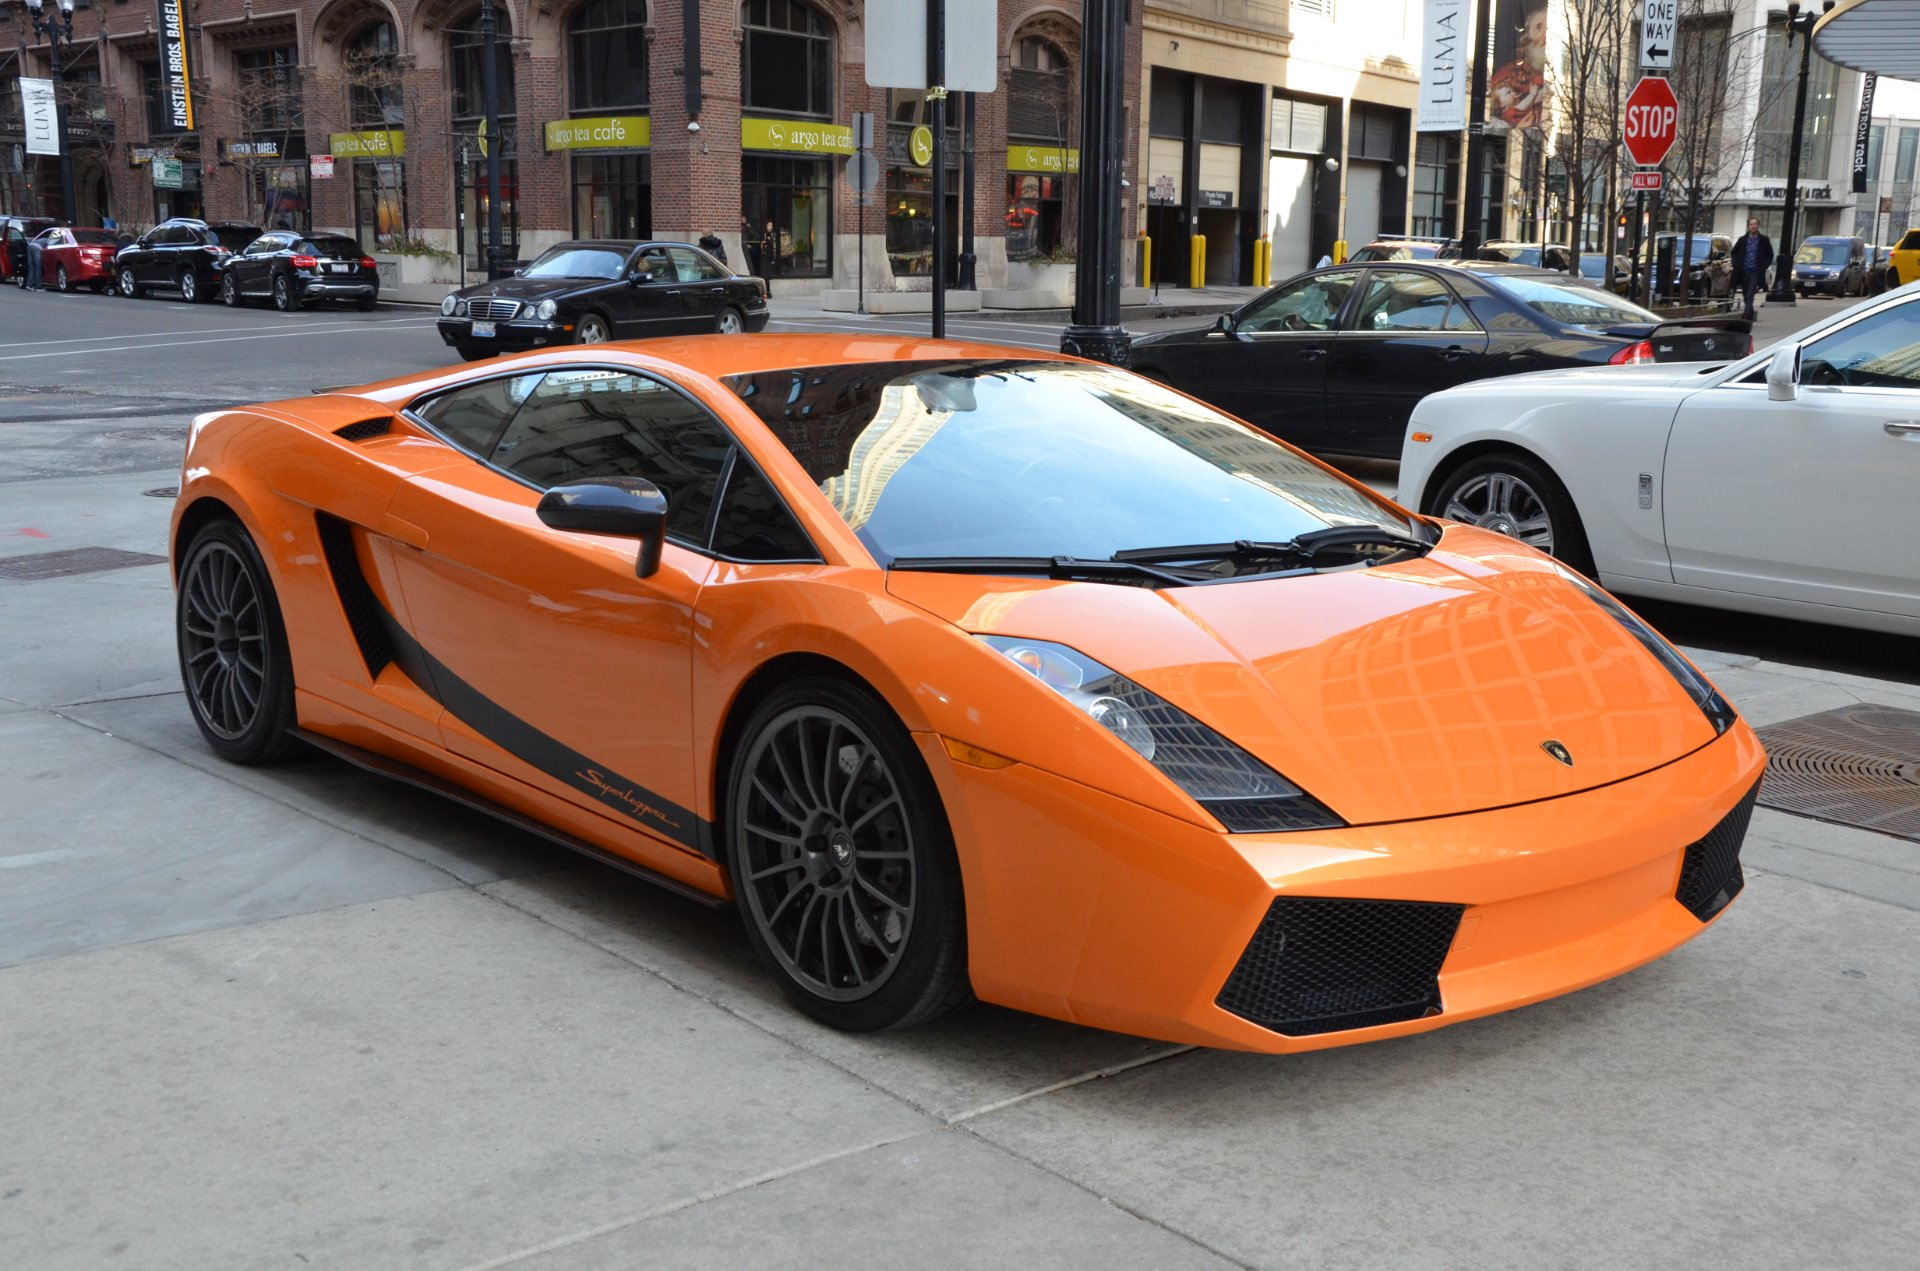 2008 lamborghini gallardo superleggera stock l279a for sale near chicago il il lamborghini. Black Bedroom Furniture Sets. Home Design Ideas